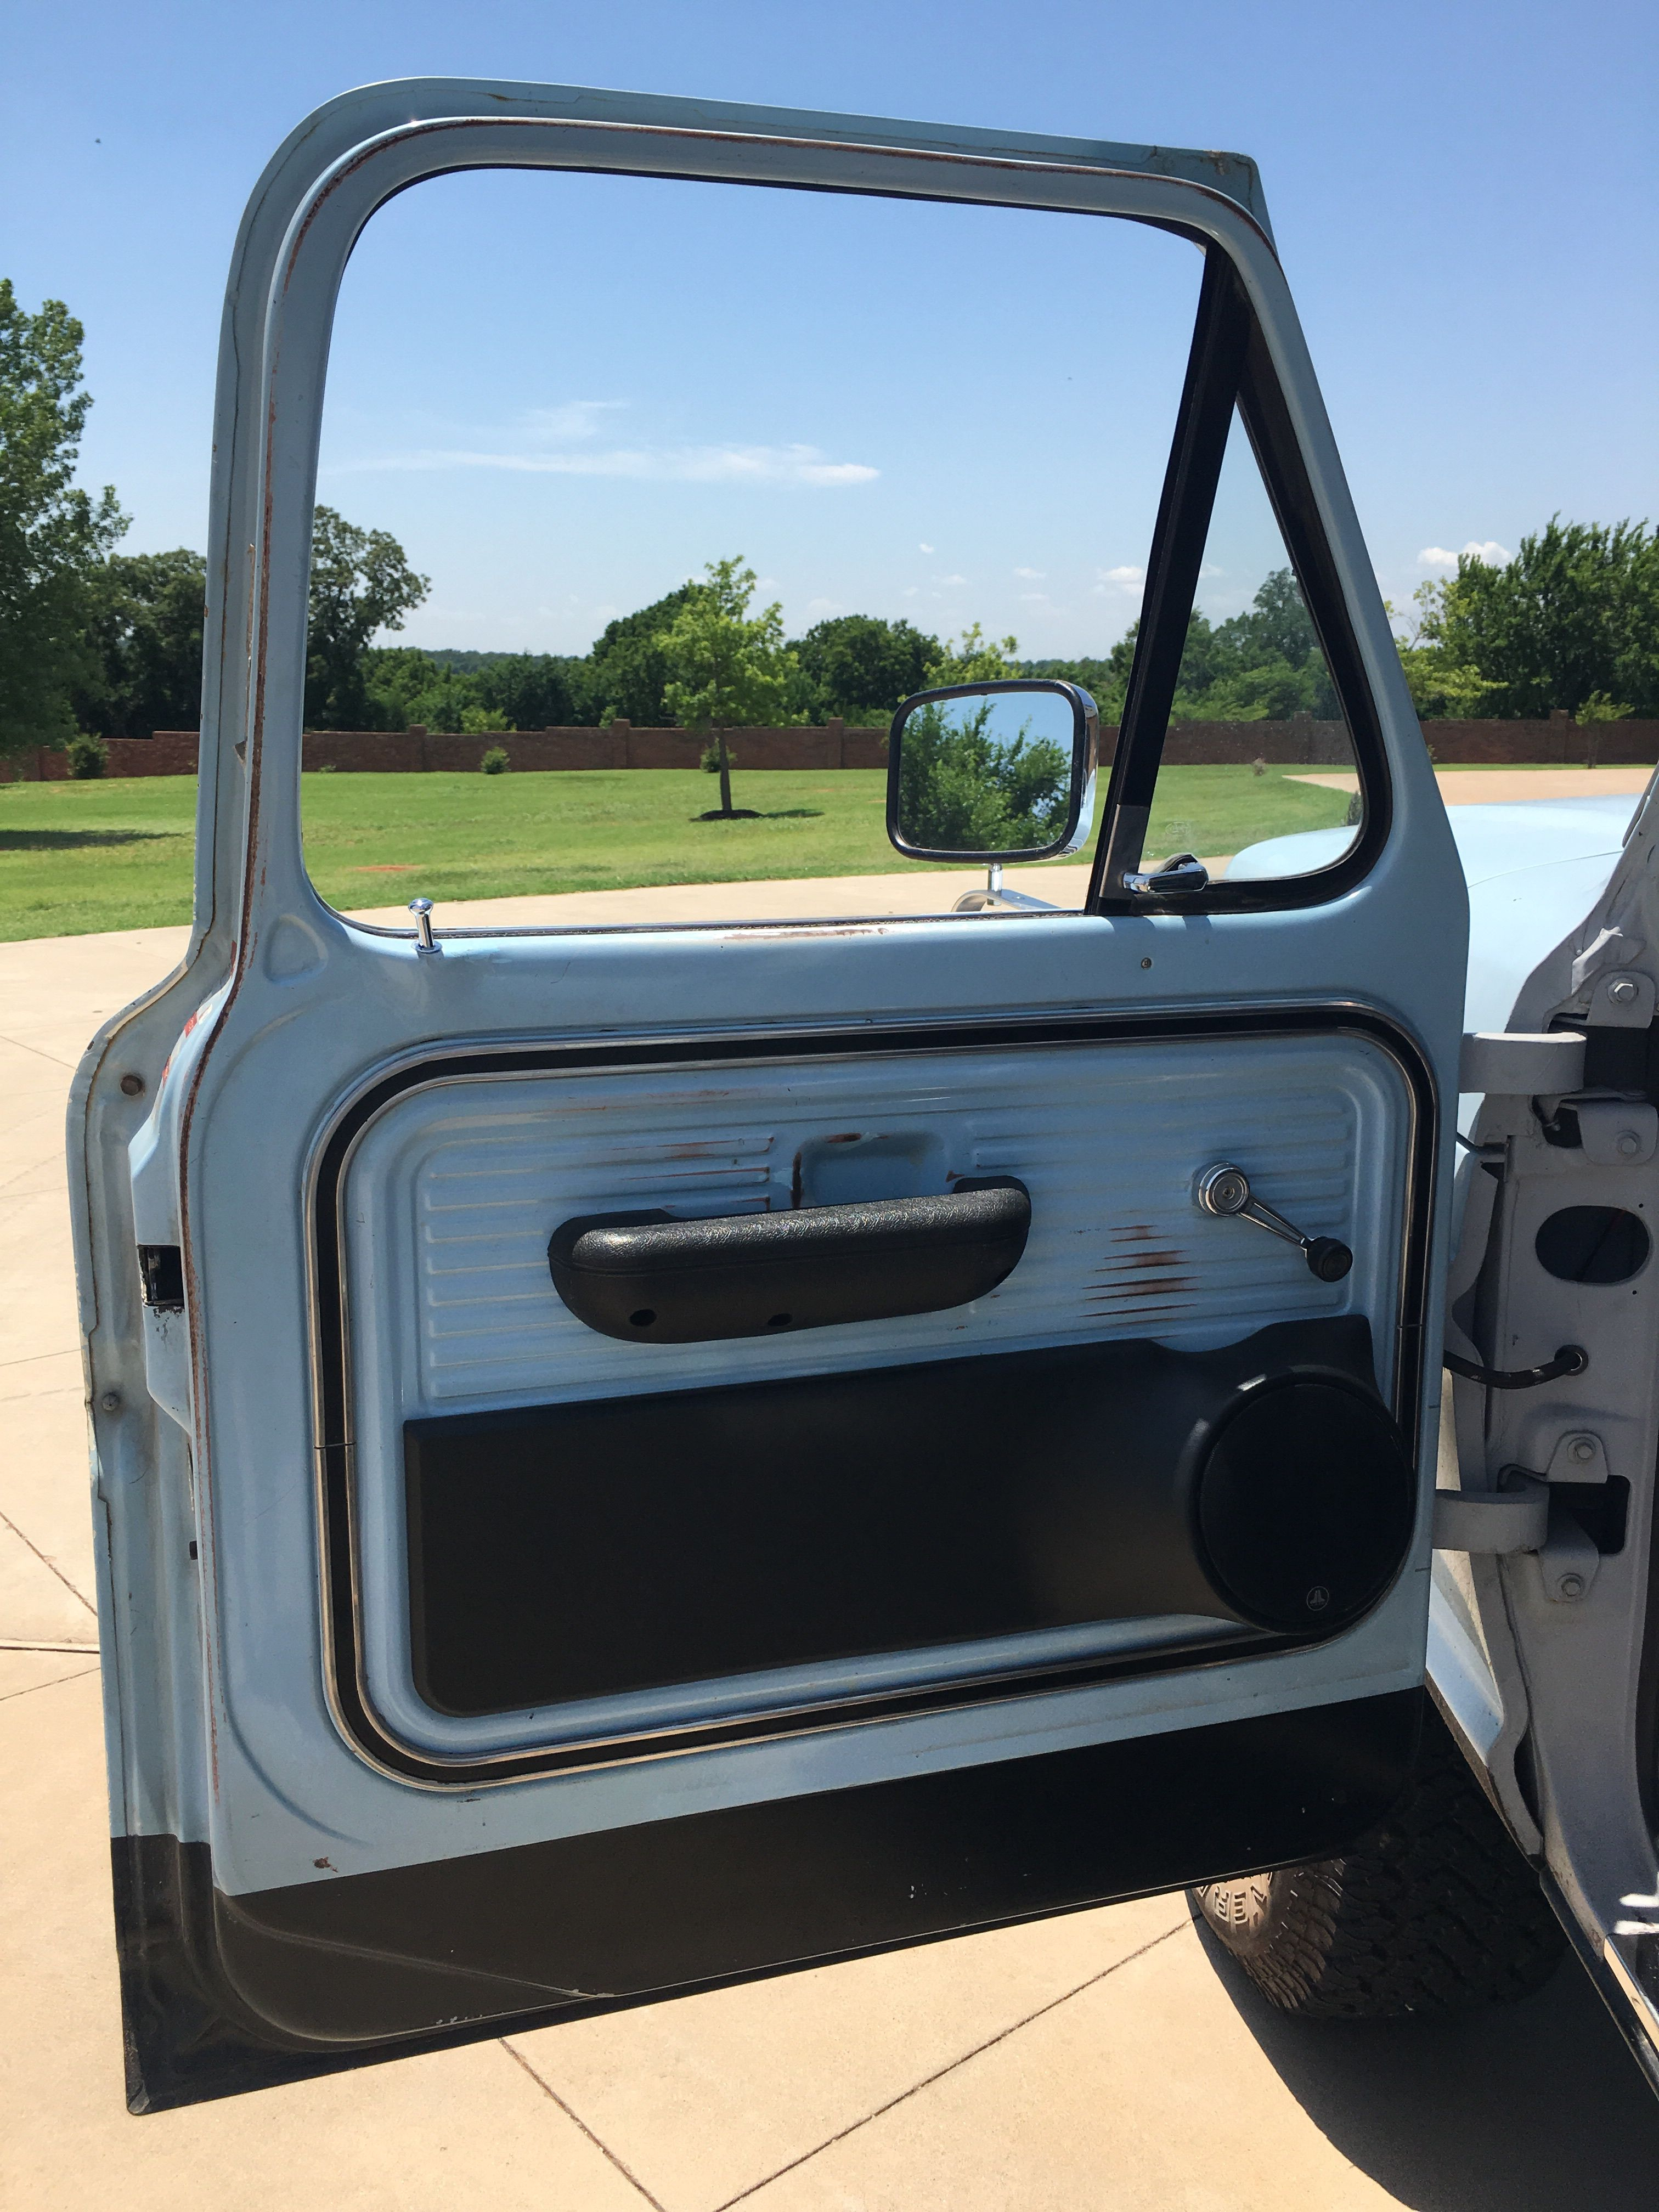 1968 Ford F100 Door Panel Speakers Old Ford Trucks Ford Trucks Old Fords